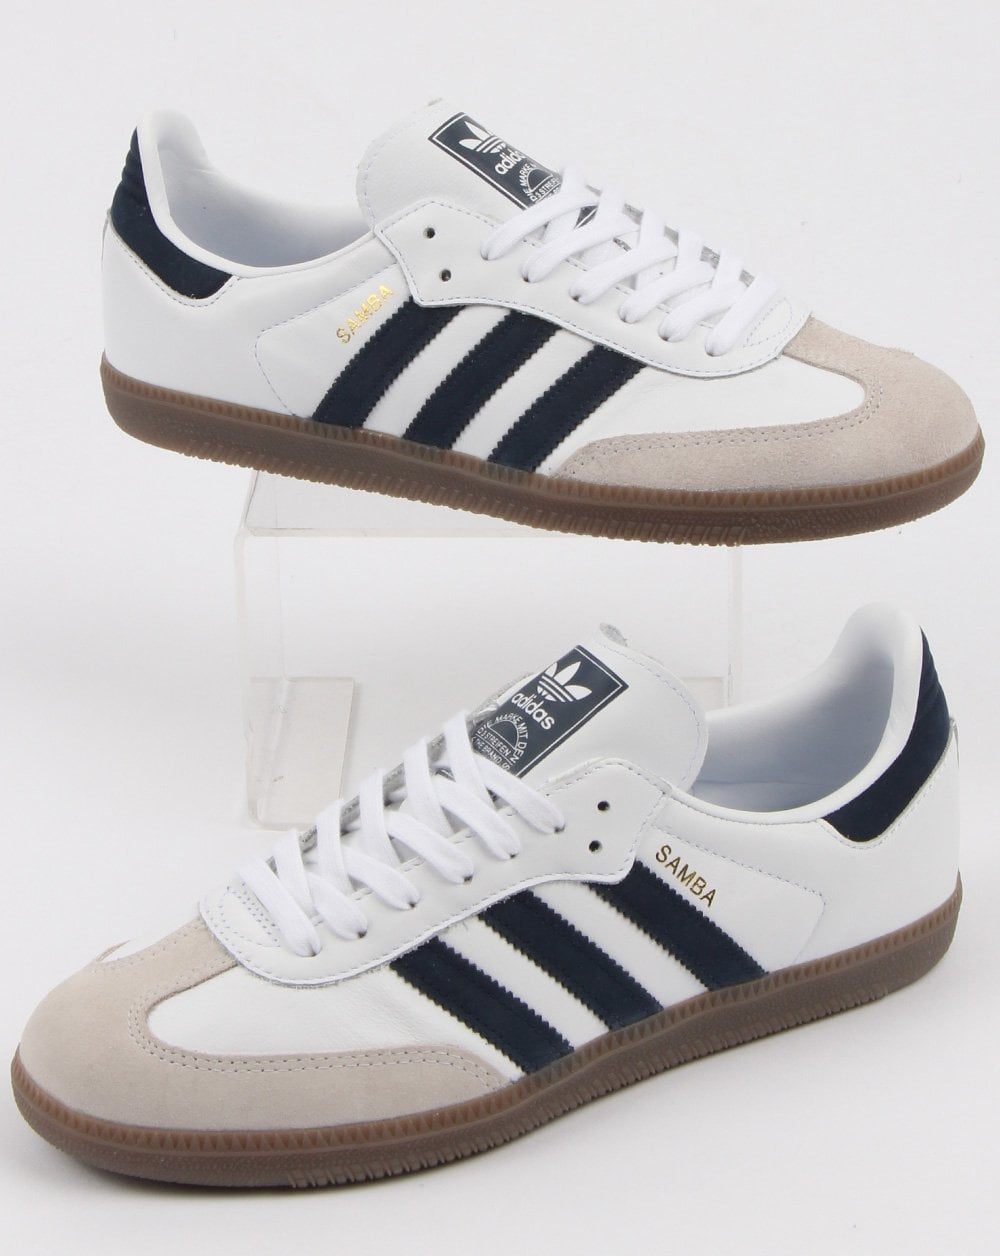 f1c6331a890925 adidas Trainers Adidas Samba Og Trainers White navy